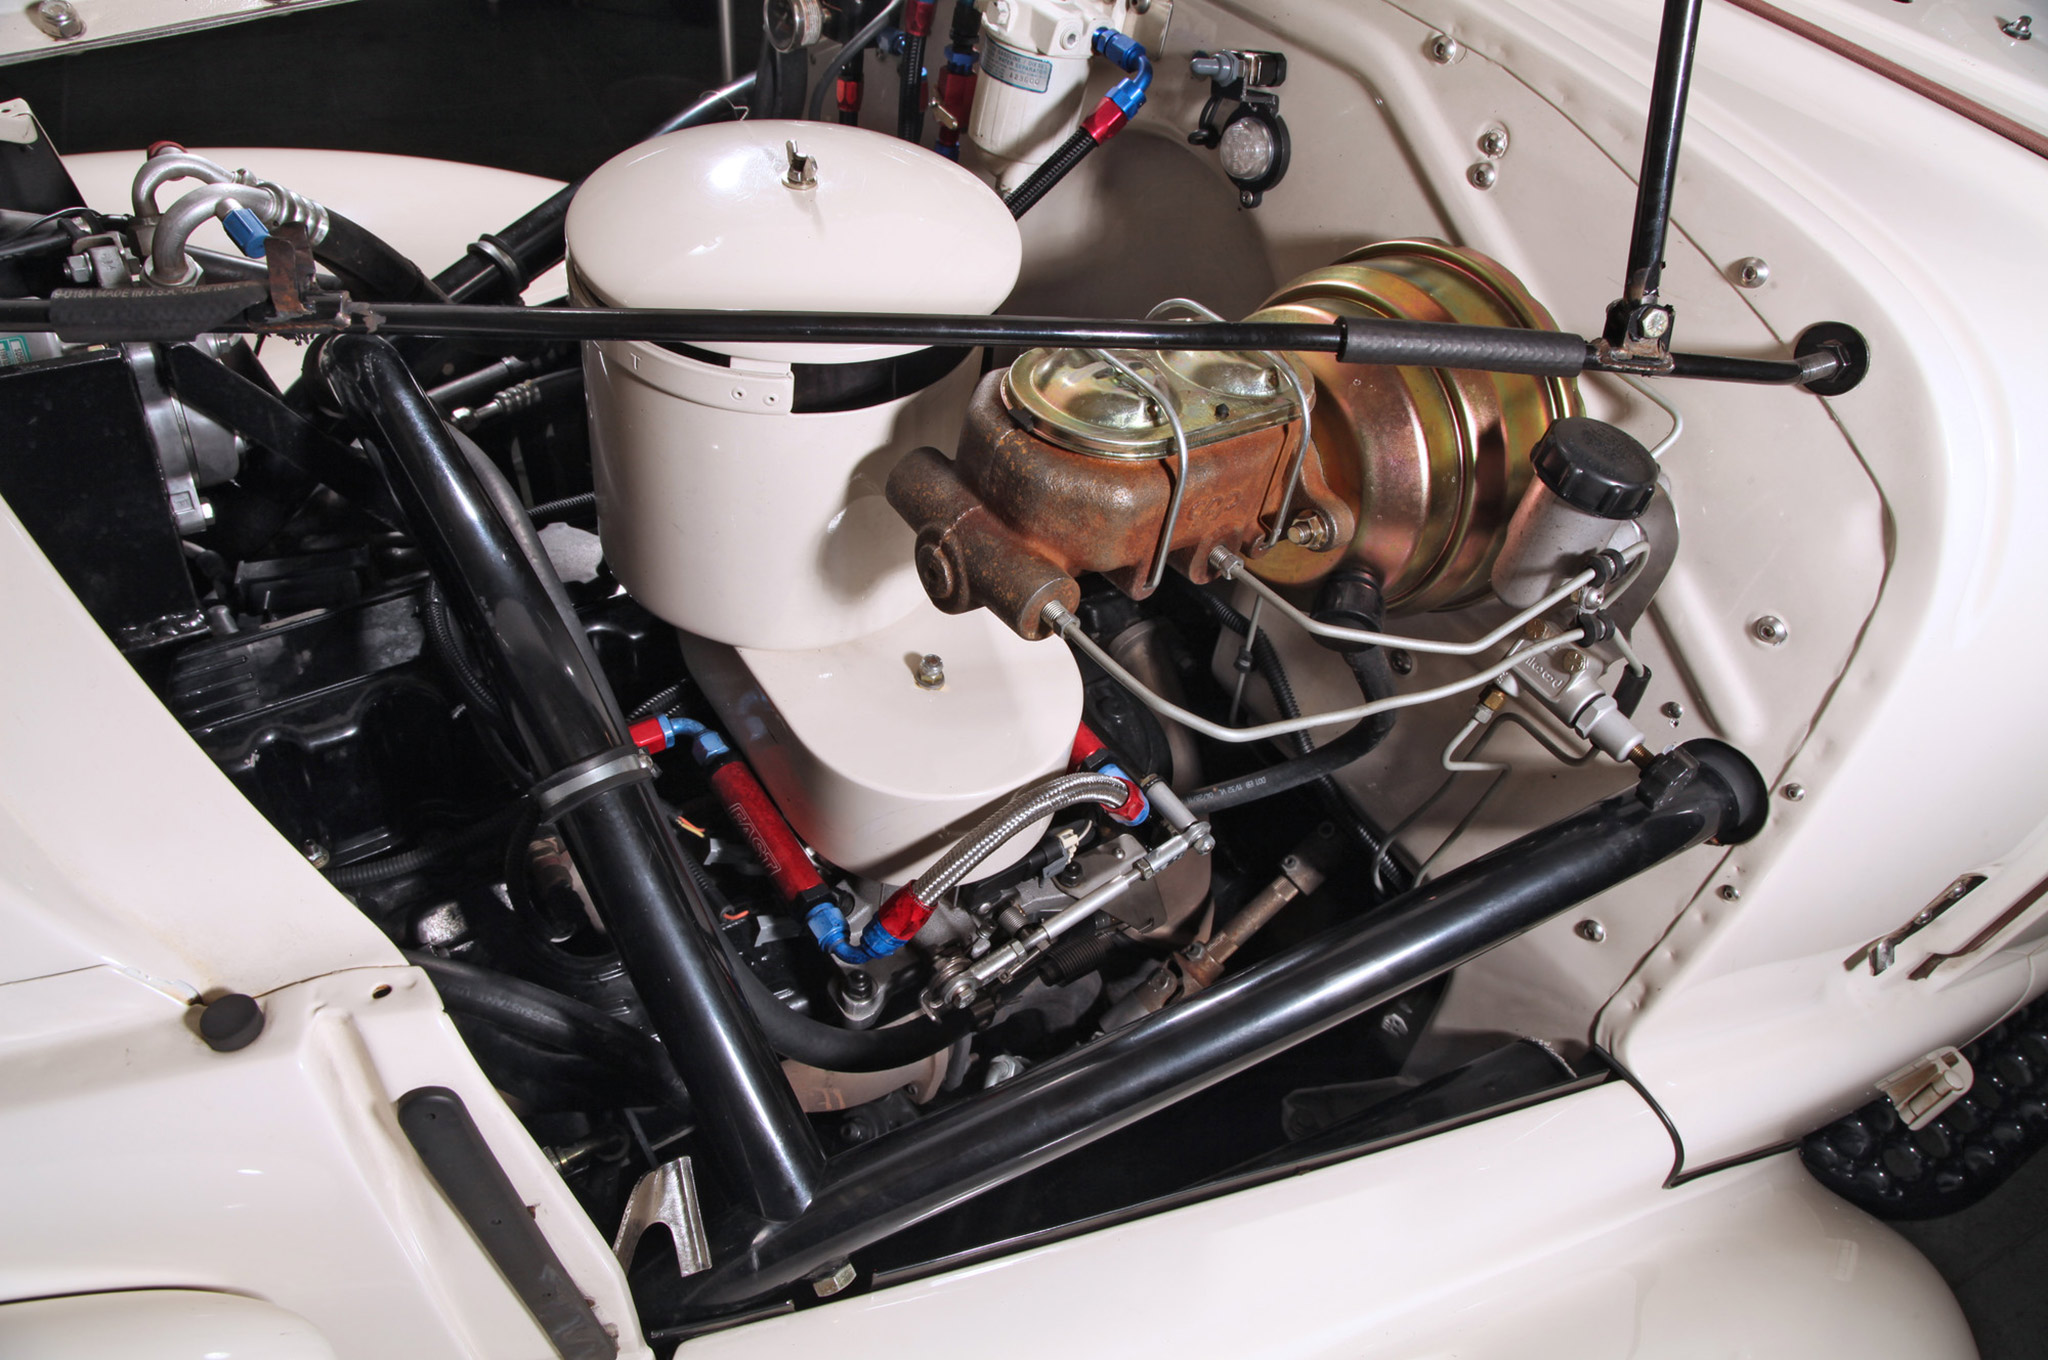 All three Chevys run a variation of Chevrolet's venerable 250ci inline-six. A few things like the hefty full cage seen here inspired Bill to go bigger on his—he stroked his with a 292 crank.